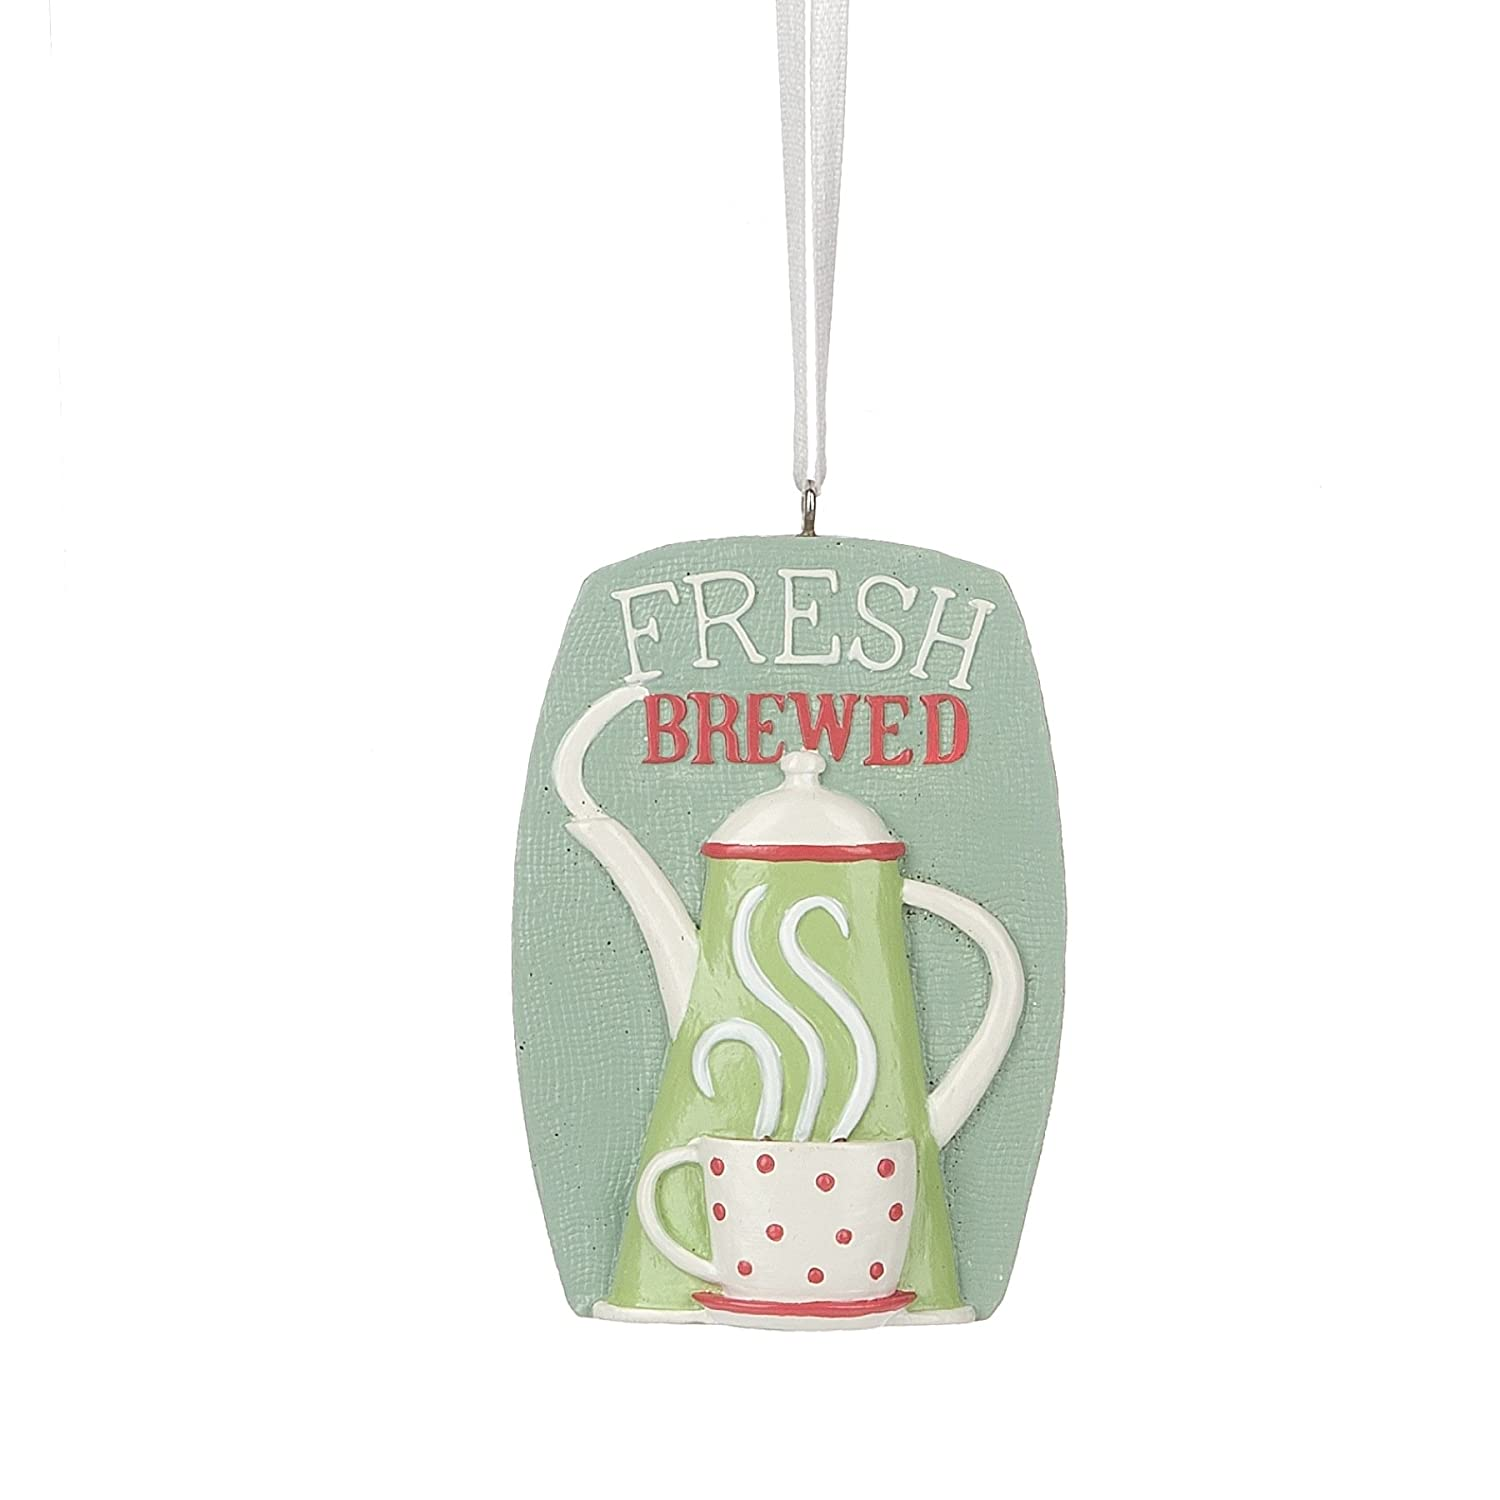 Midwest-CBK Forest Brewed Coffee Sign Resin Stone Christmas Ornament